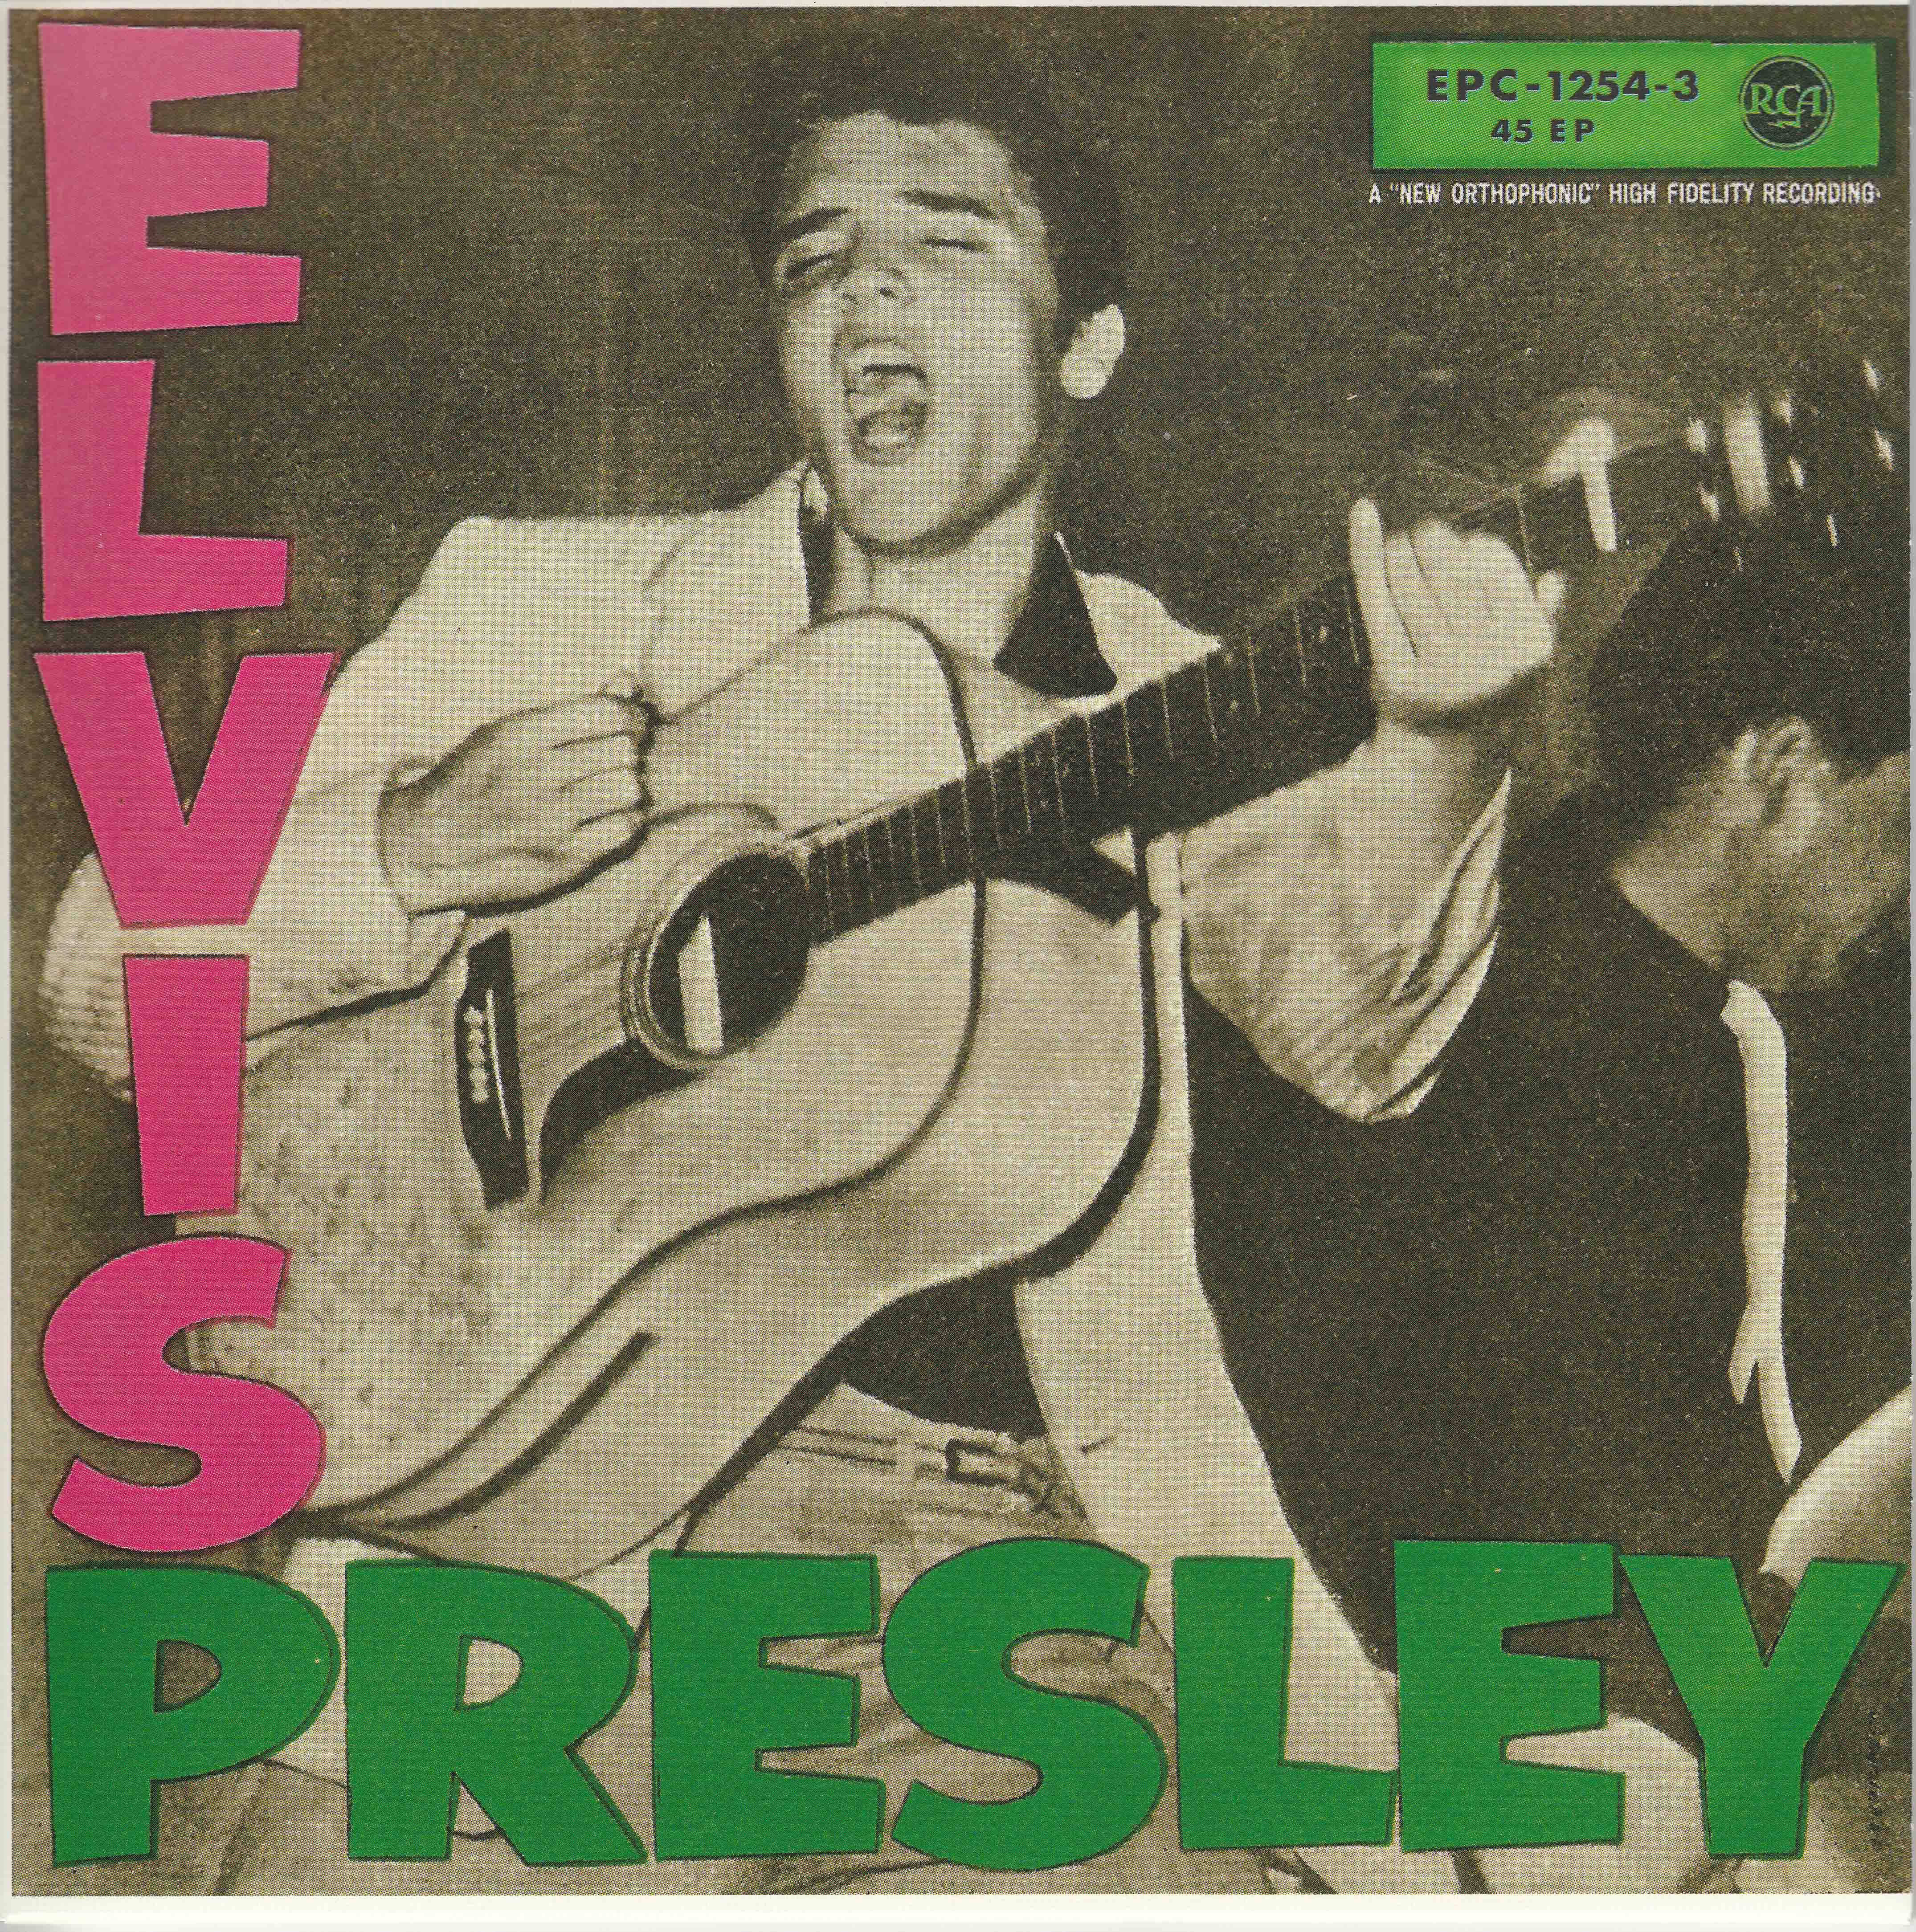 How RCA Brought Elvis To Europe (FTD)